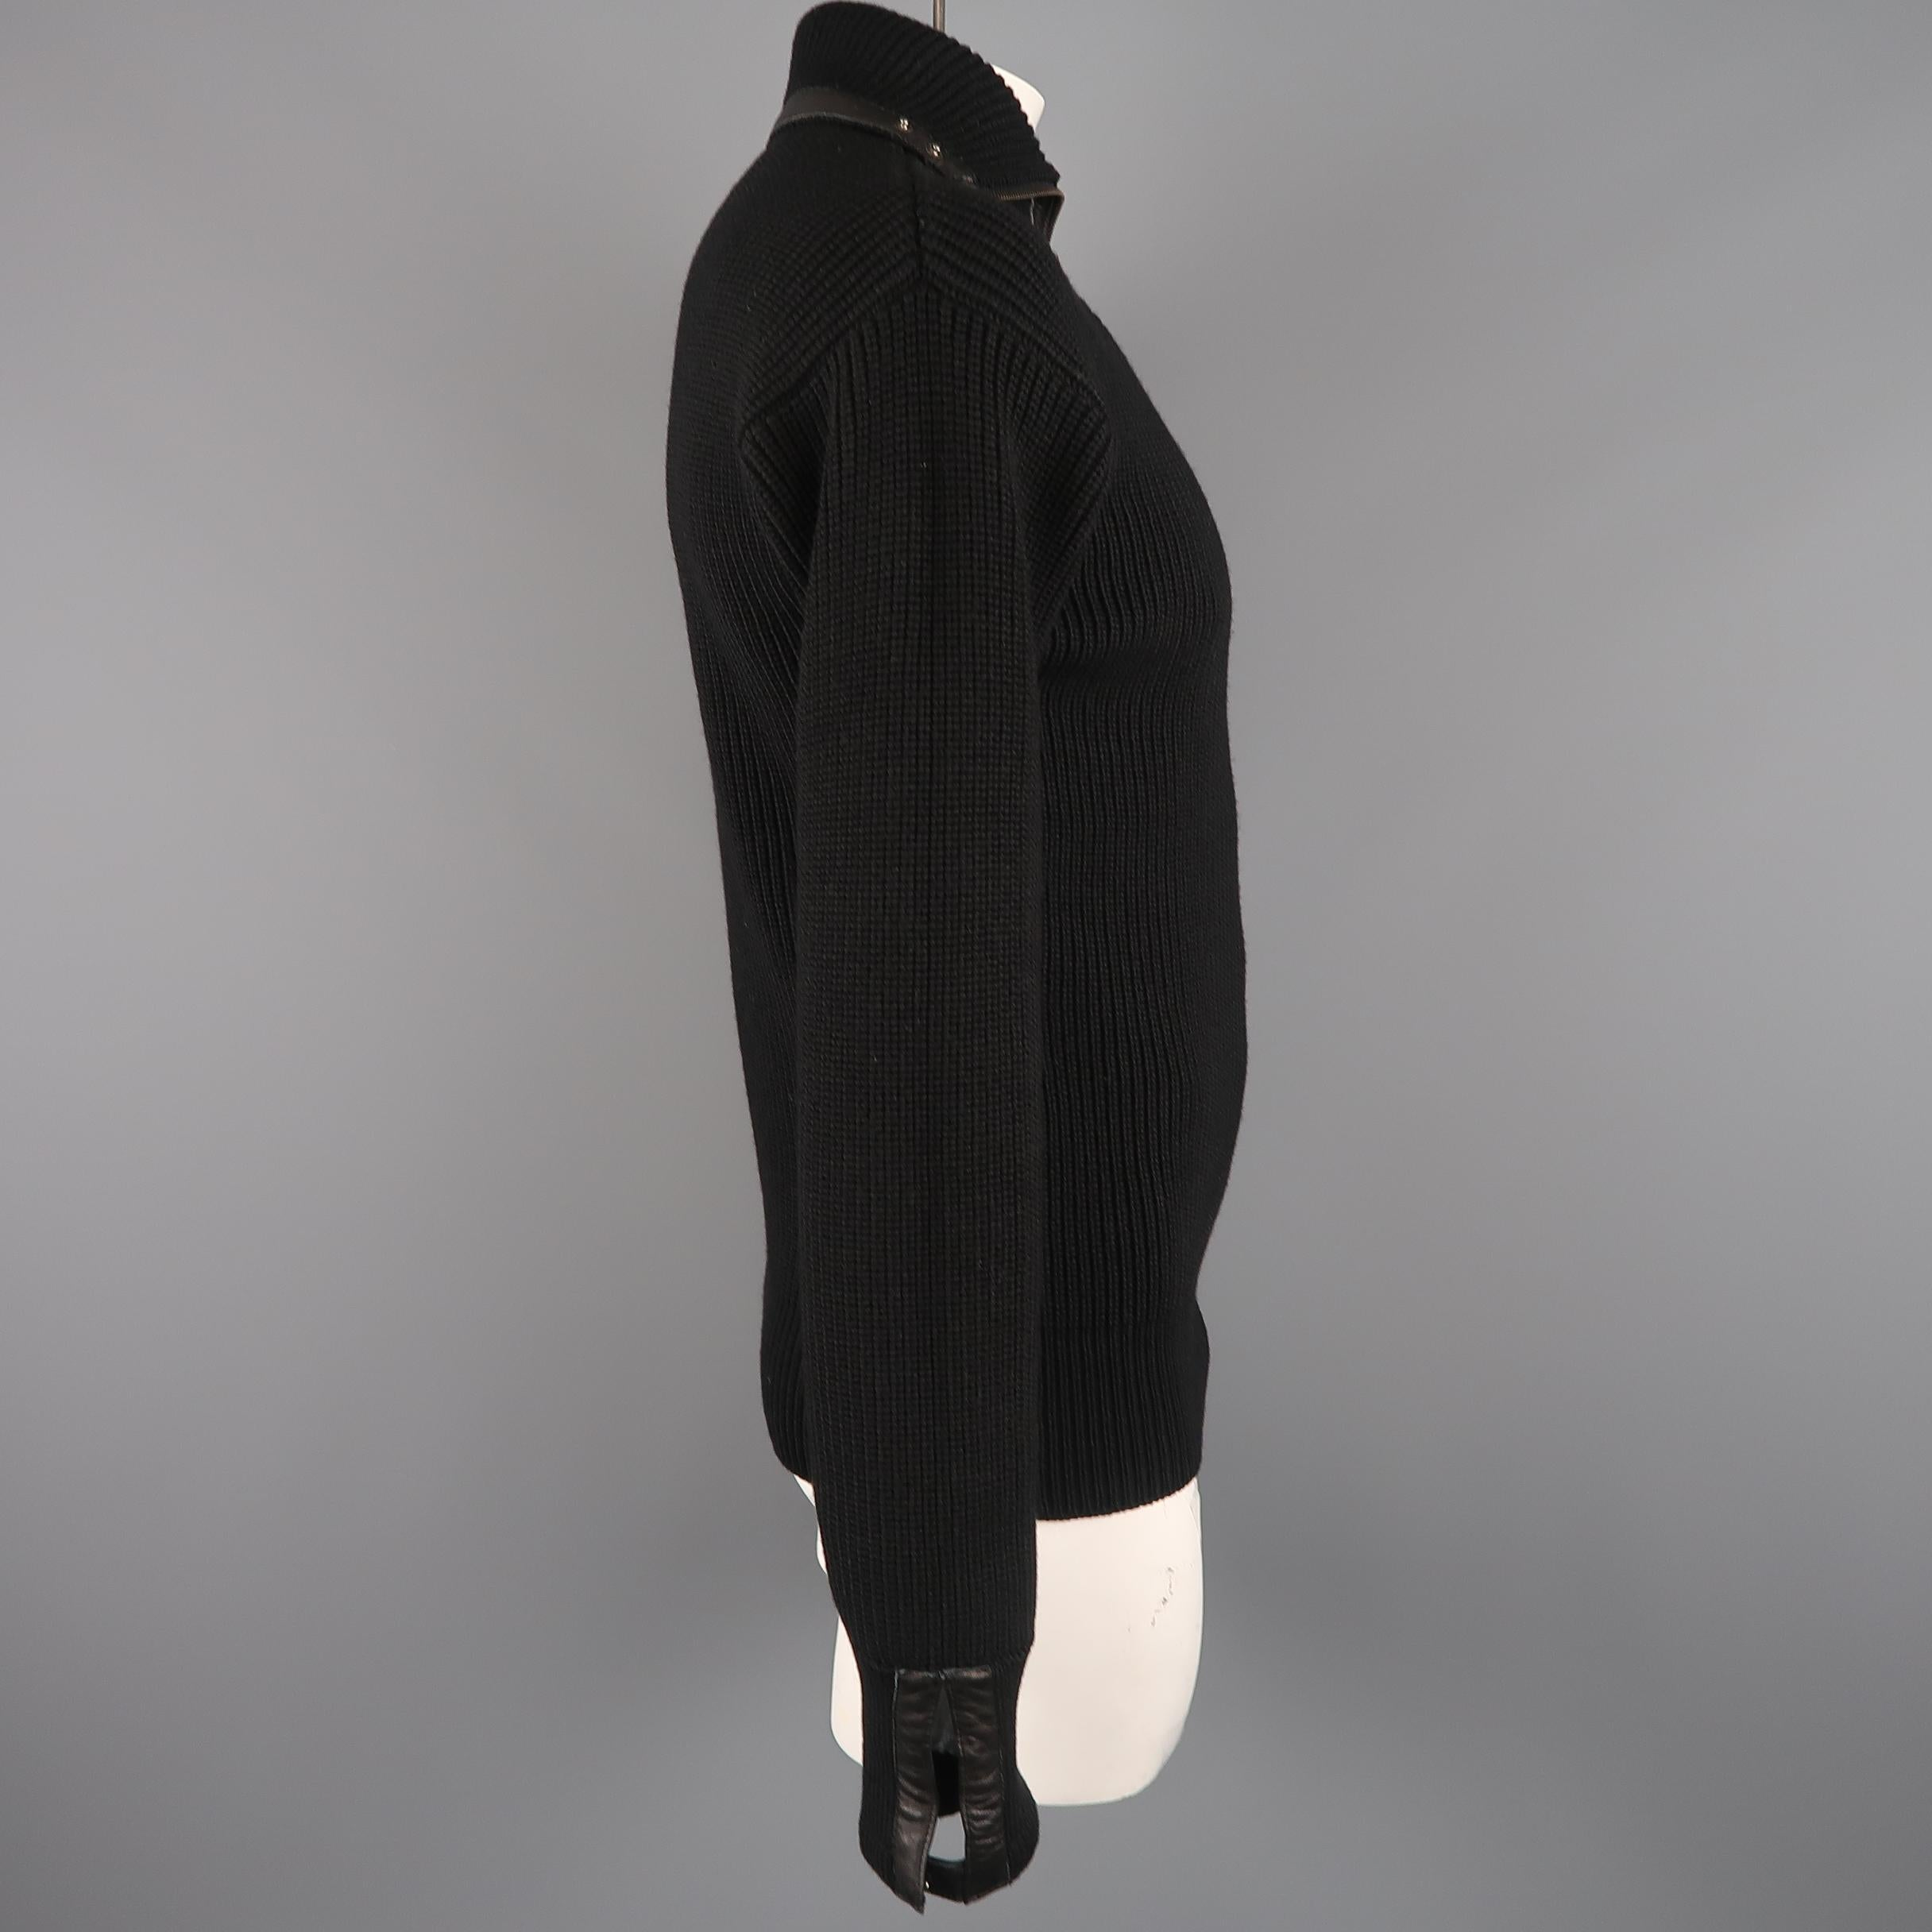 a29d424b801 GUCCI Size L Black Ribbed Knit Wool and Leather Zip Turtleneck Sweater at  1stdibs